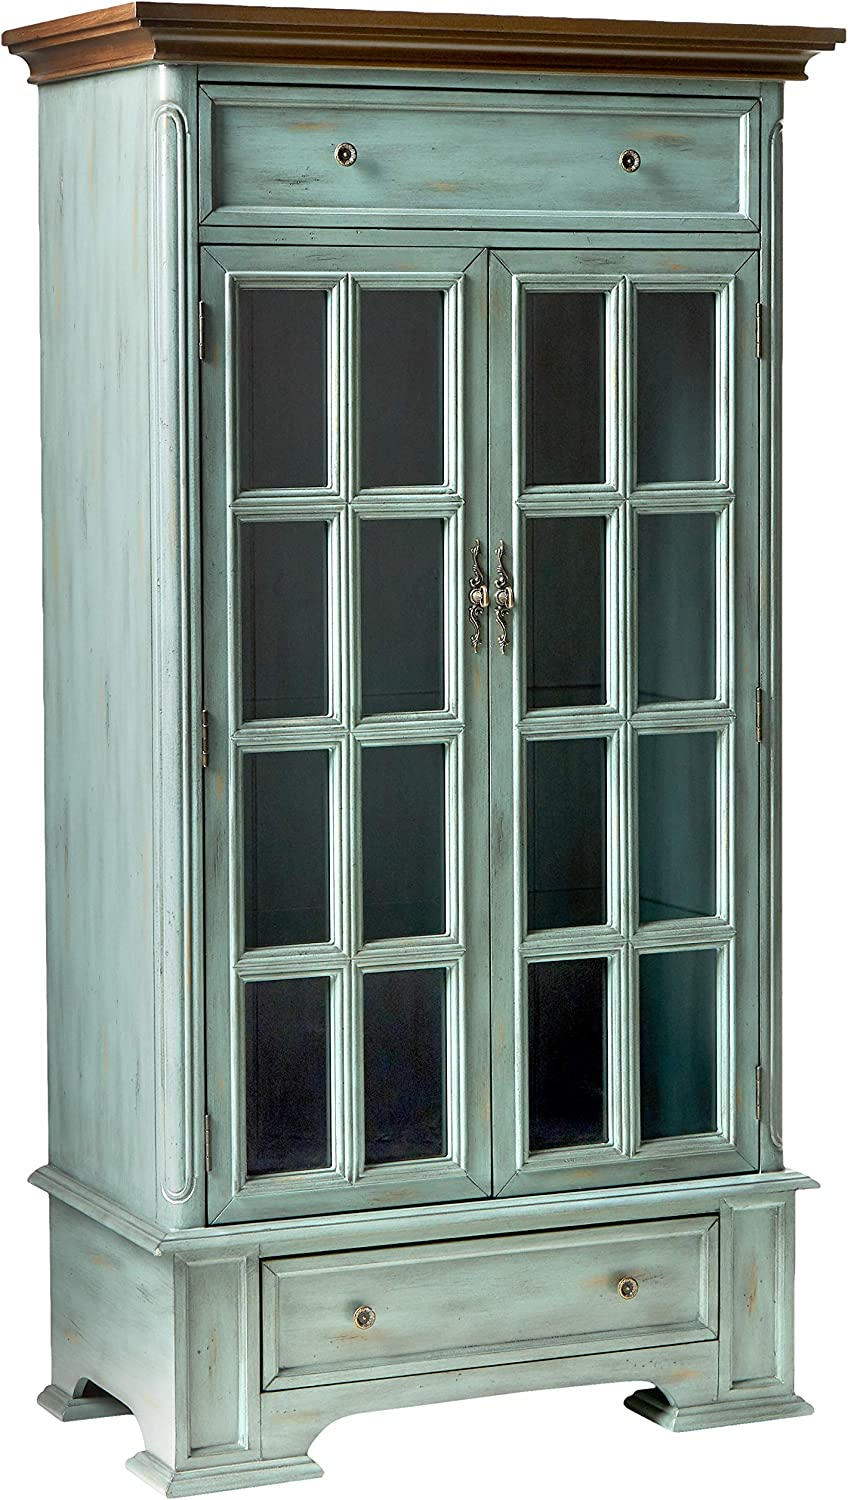 Stein World Furniture Hartford Cabinet, Antique Blue and Wood Tone